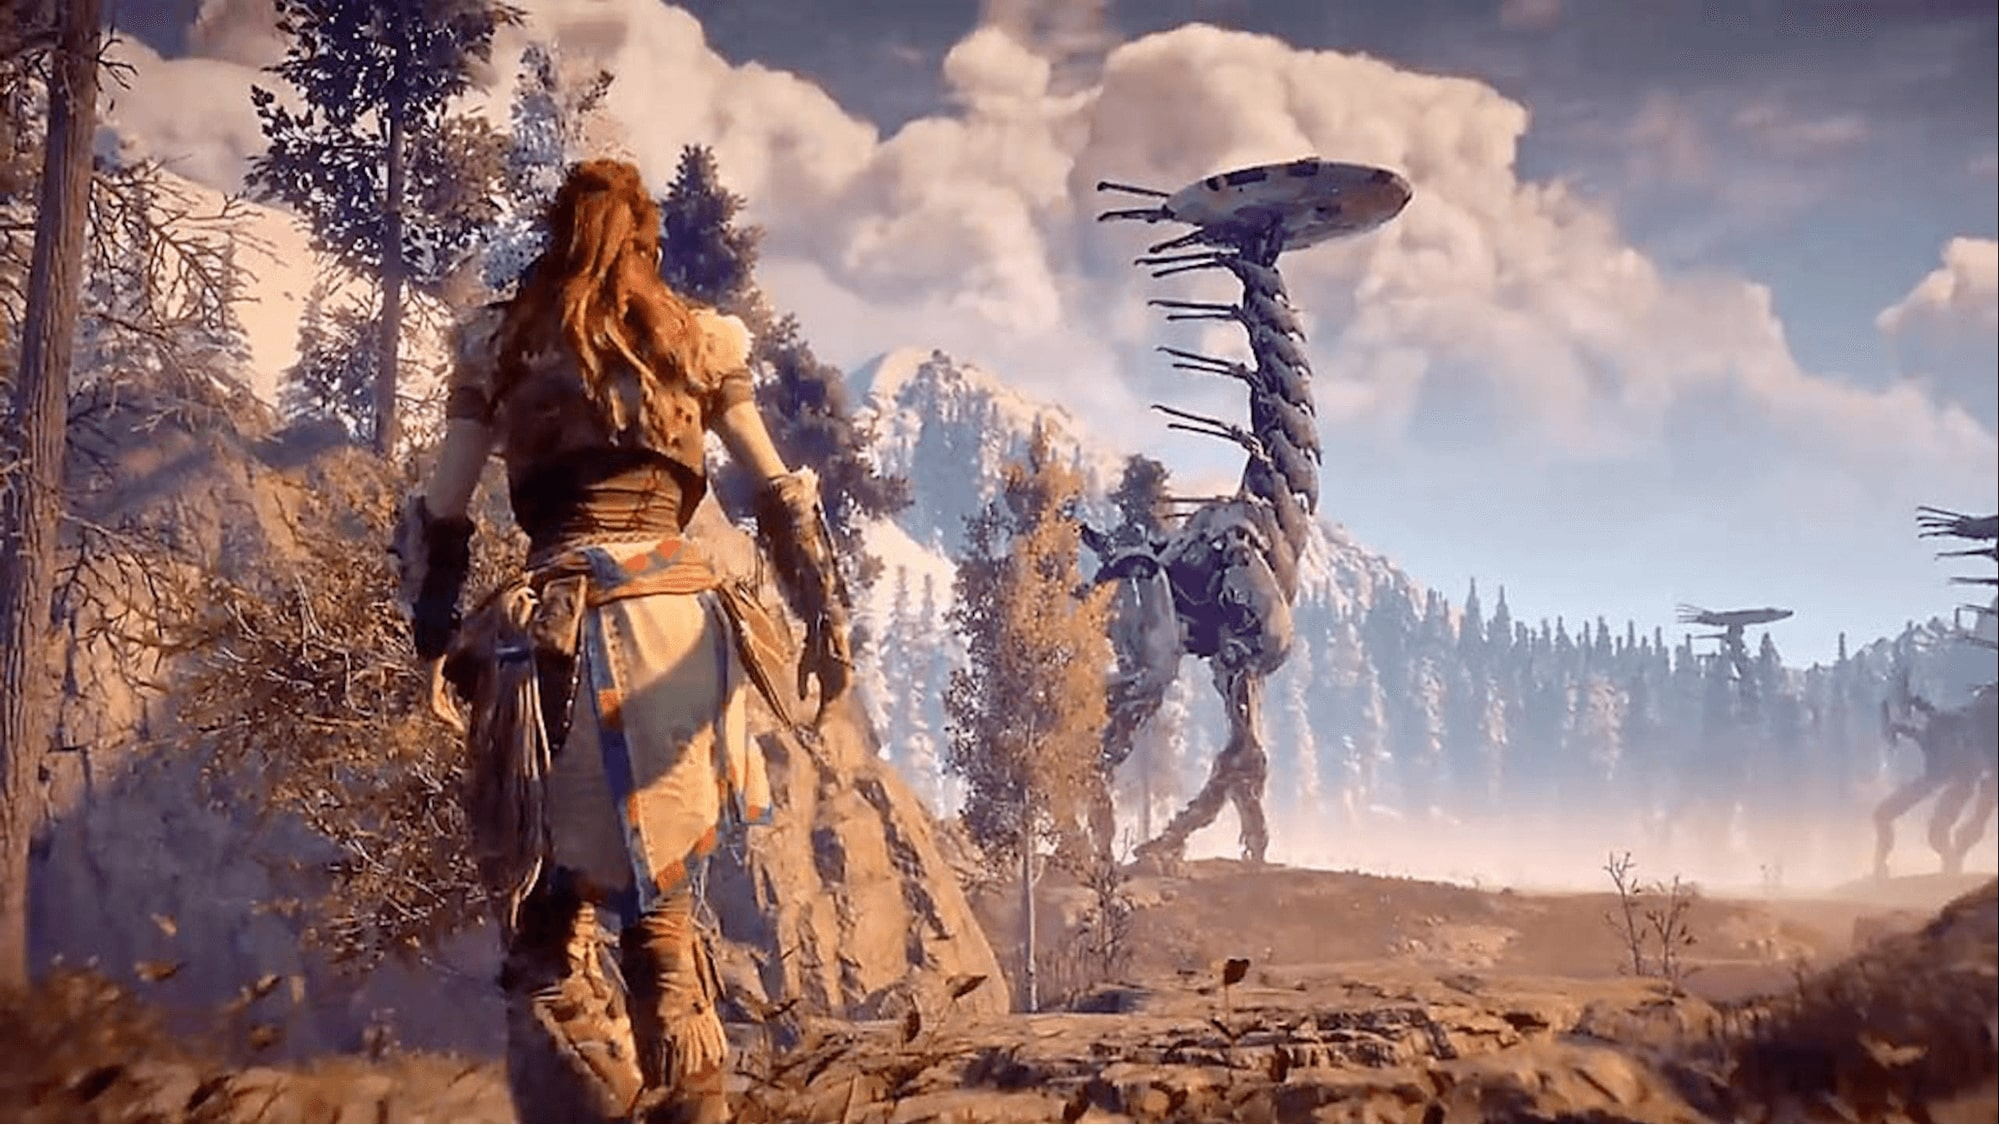 In Horizon Zero Dawn, the environment tells about events that occurred hundreds of years before the main plot